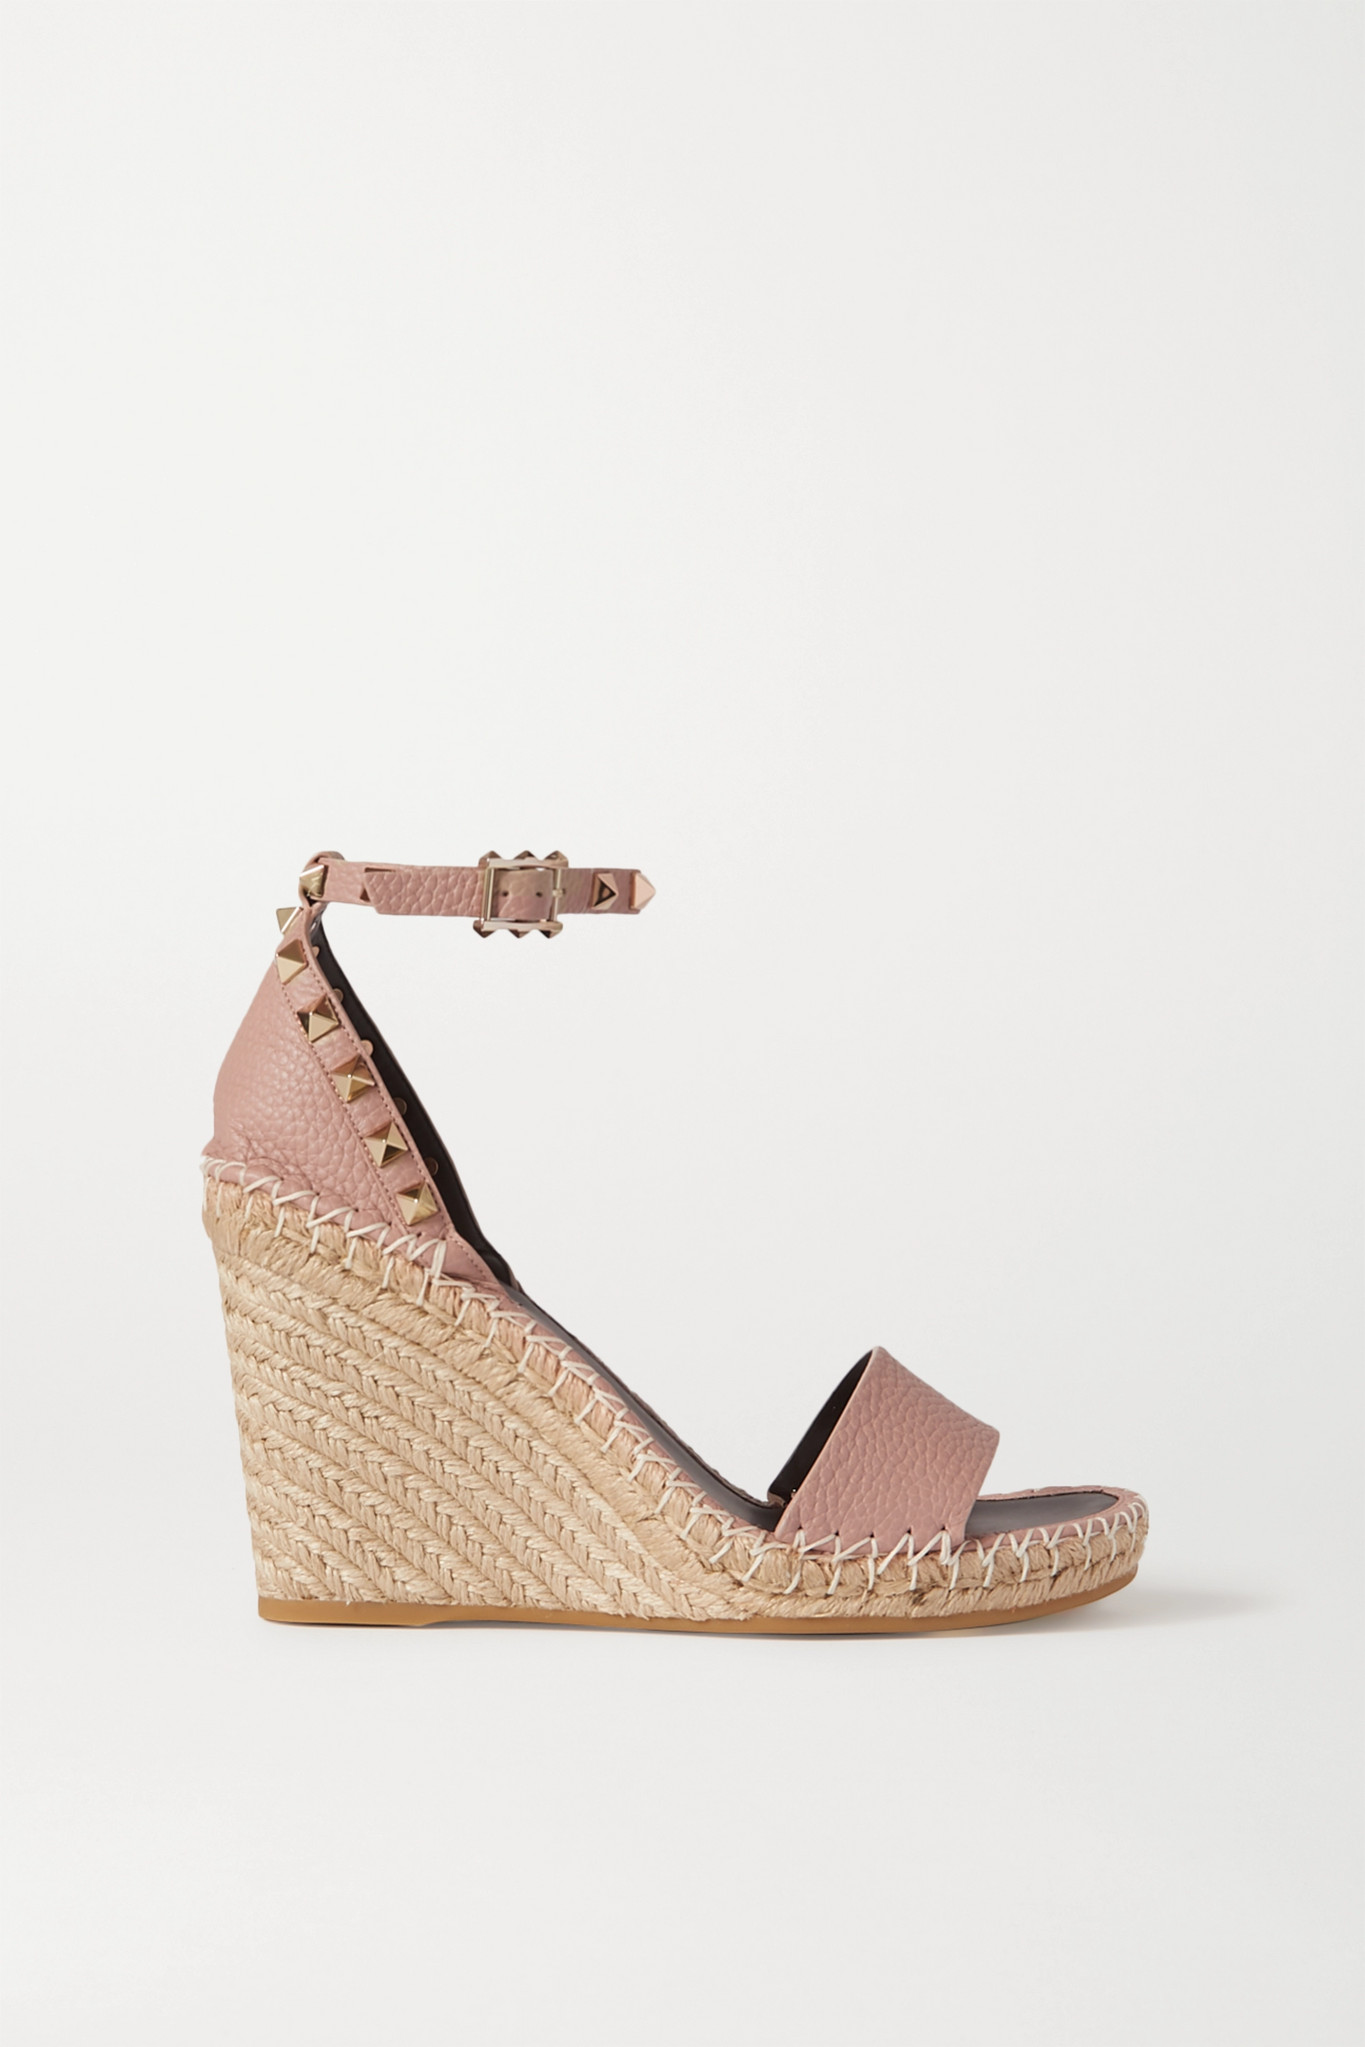 VALENTINO - Valentino Garavani The Rockstud 105 Textured-leather Espadrille Wedge Sandals - Neutrals